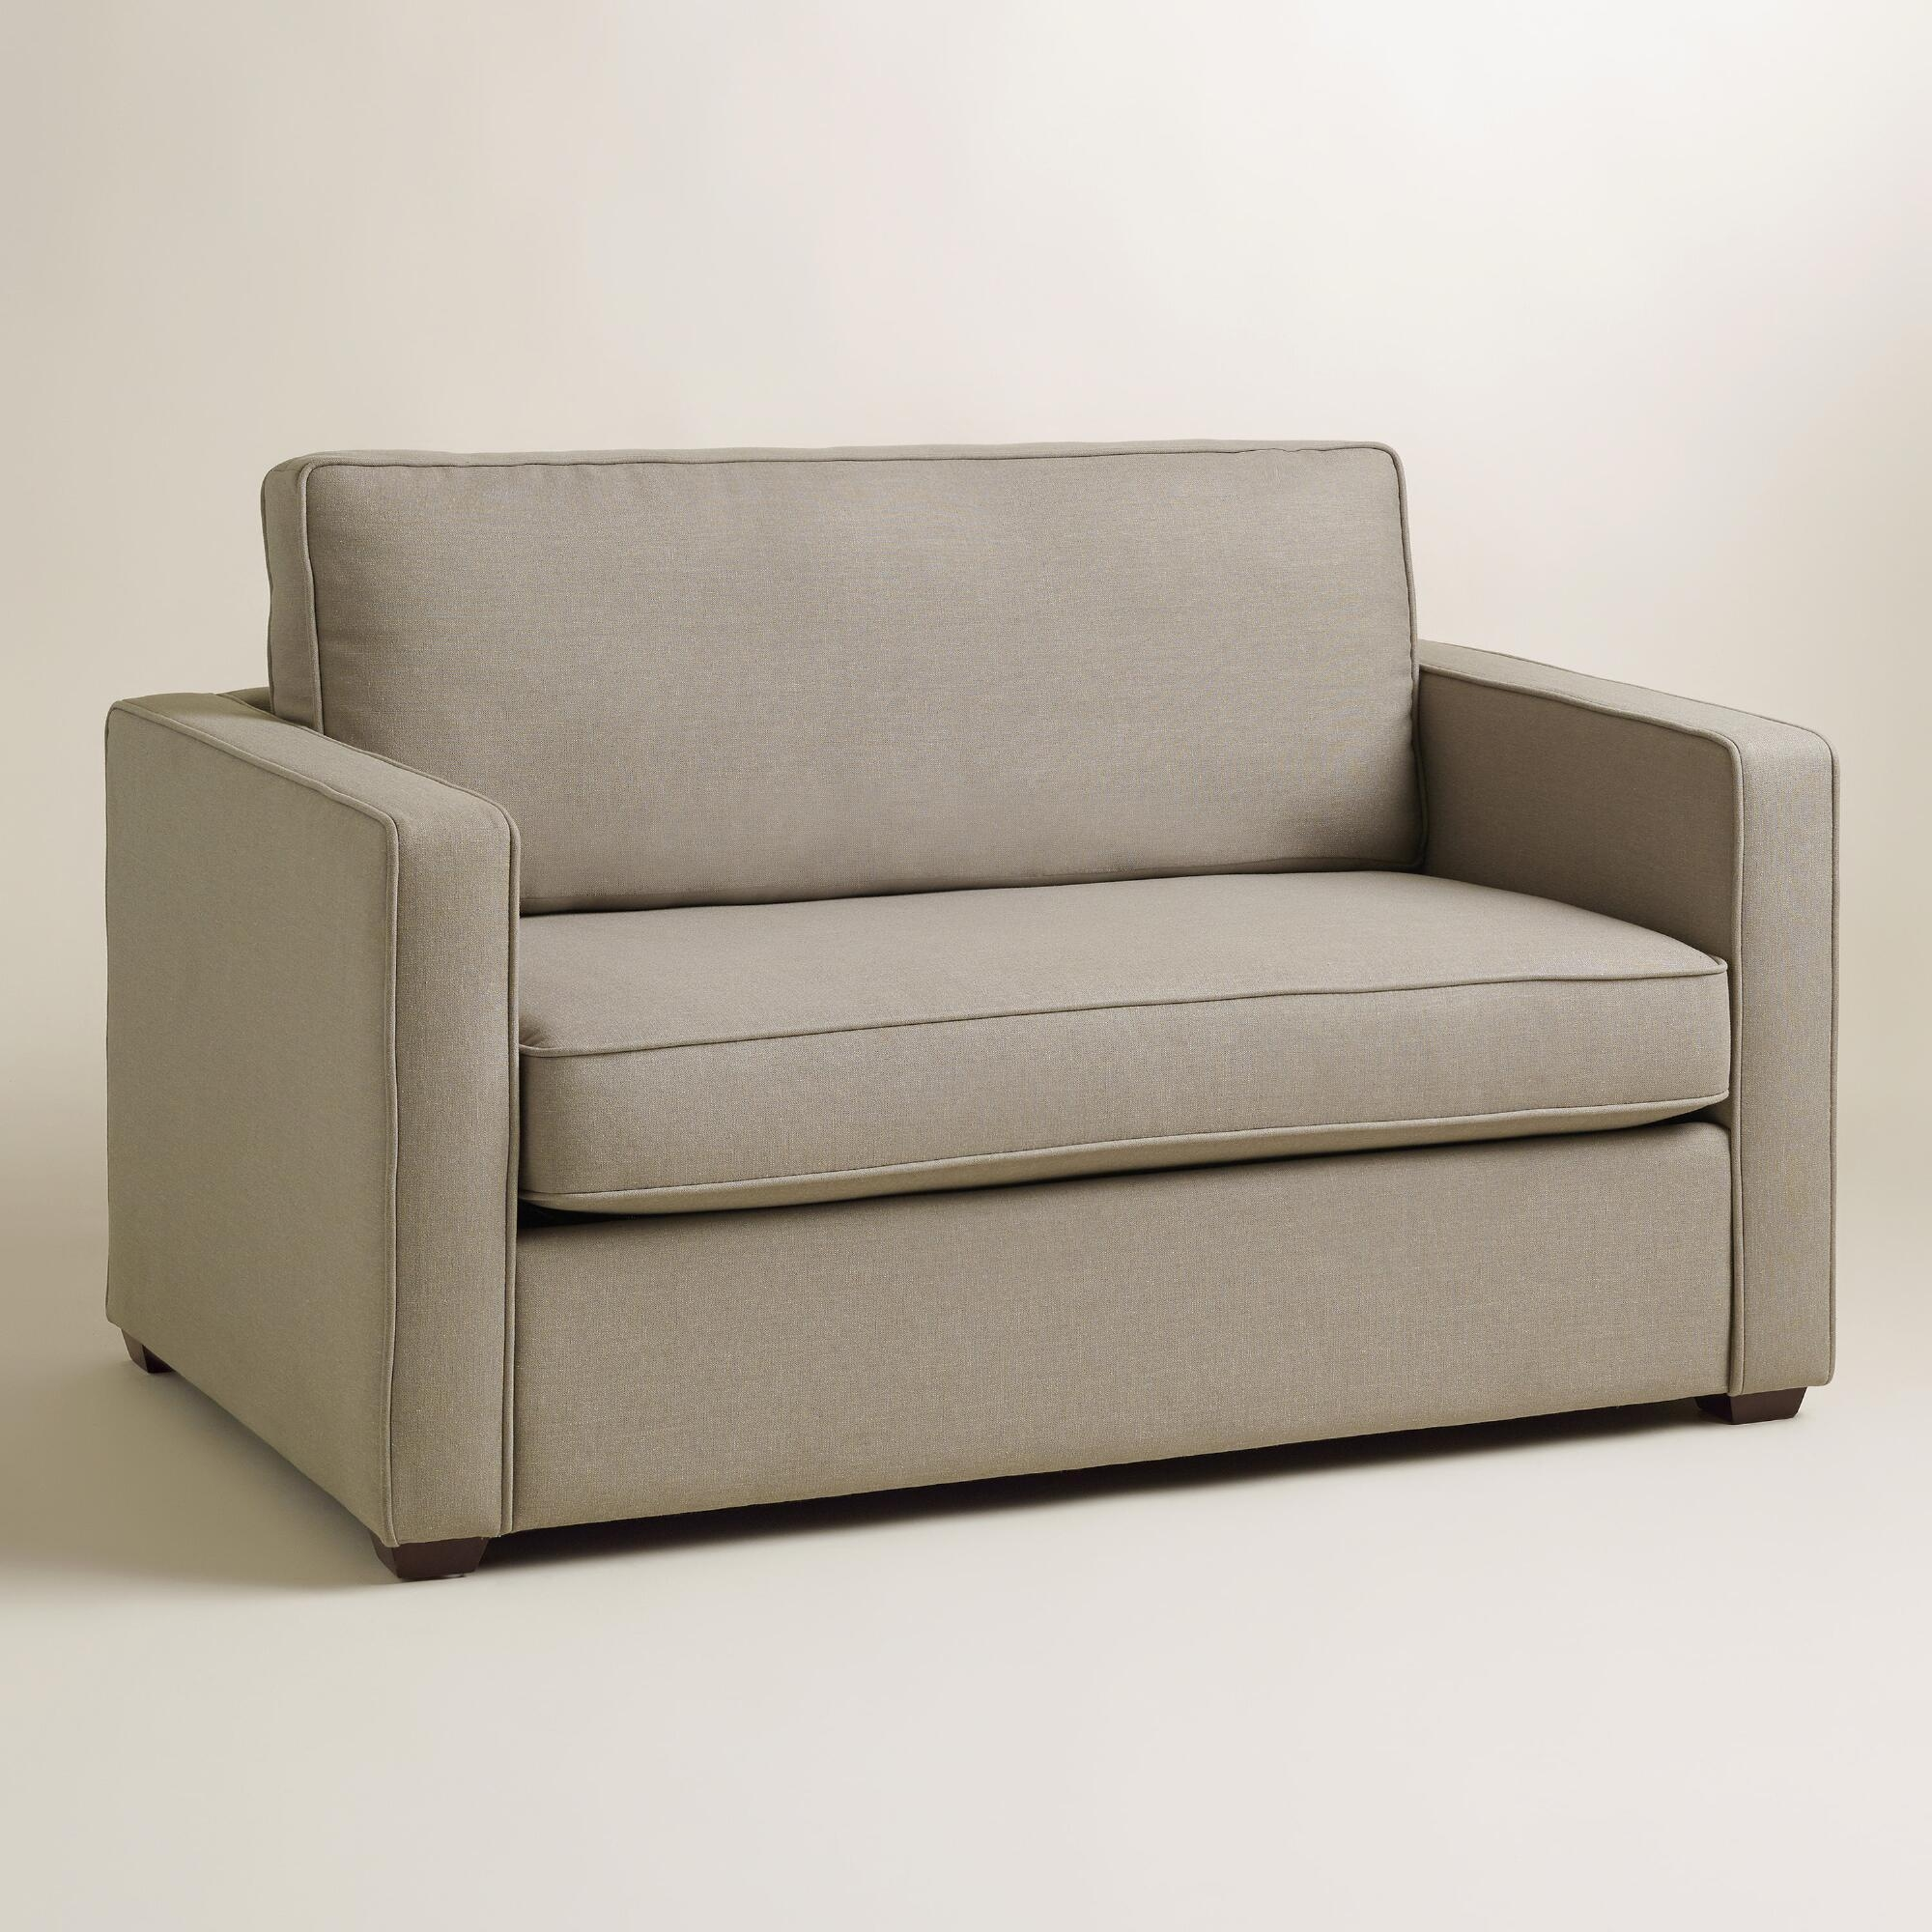 Sleeper Sofa Chair And A Half | Tehranmix Decoration Pertaining To Twin Sleeper Sofa Chairs (View 18 of 20)